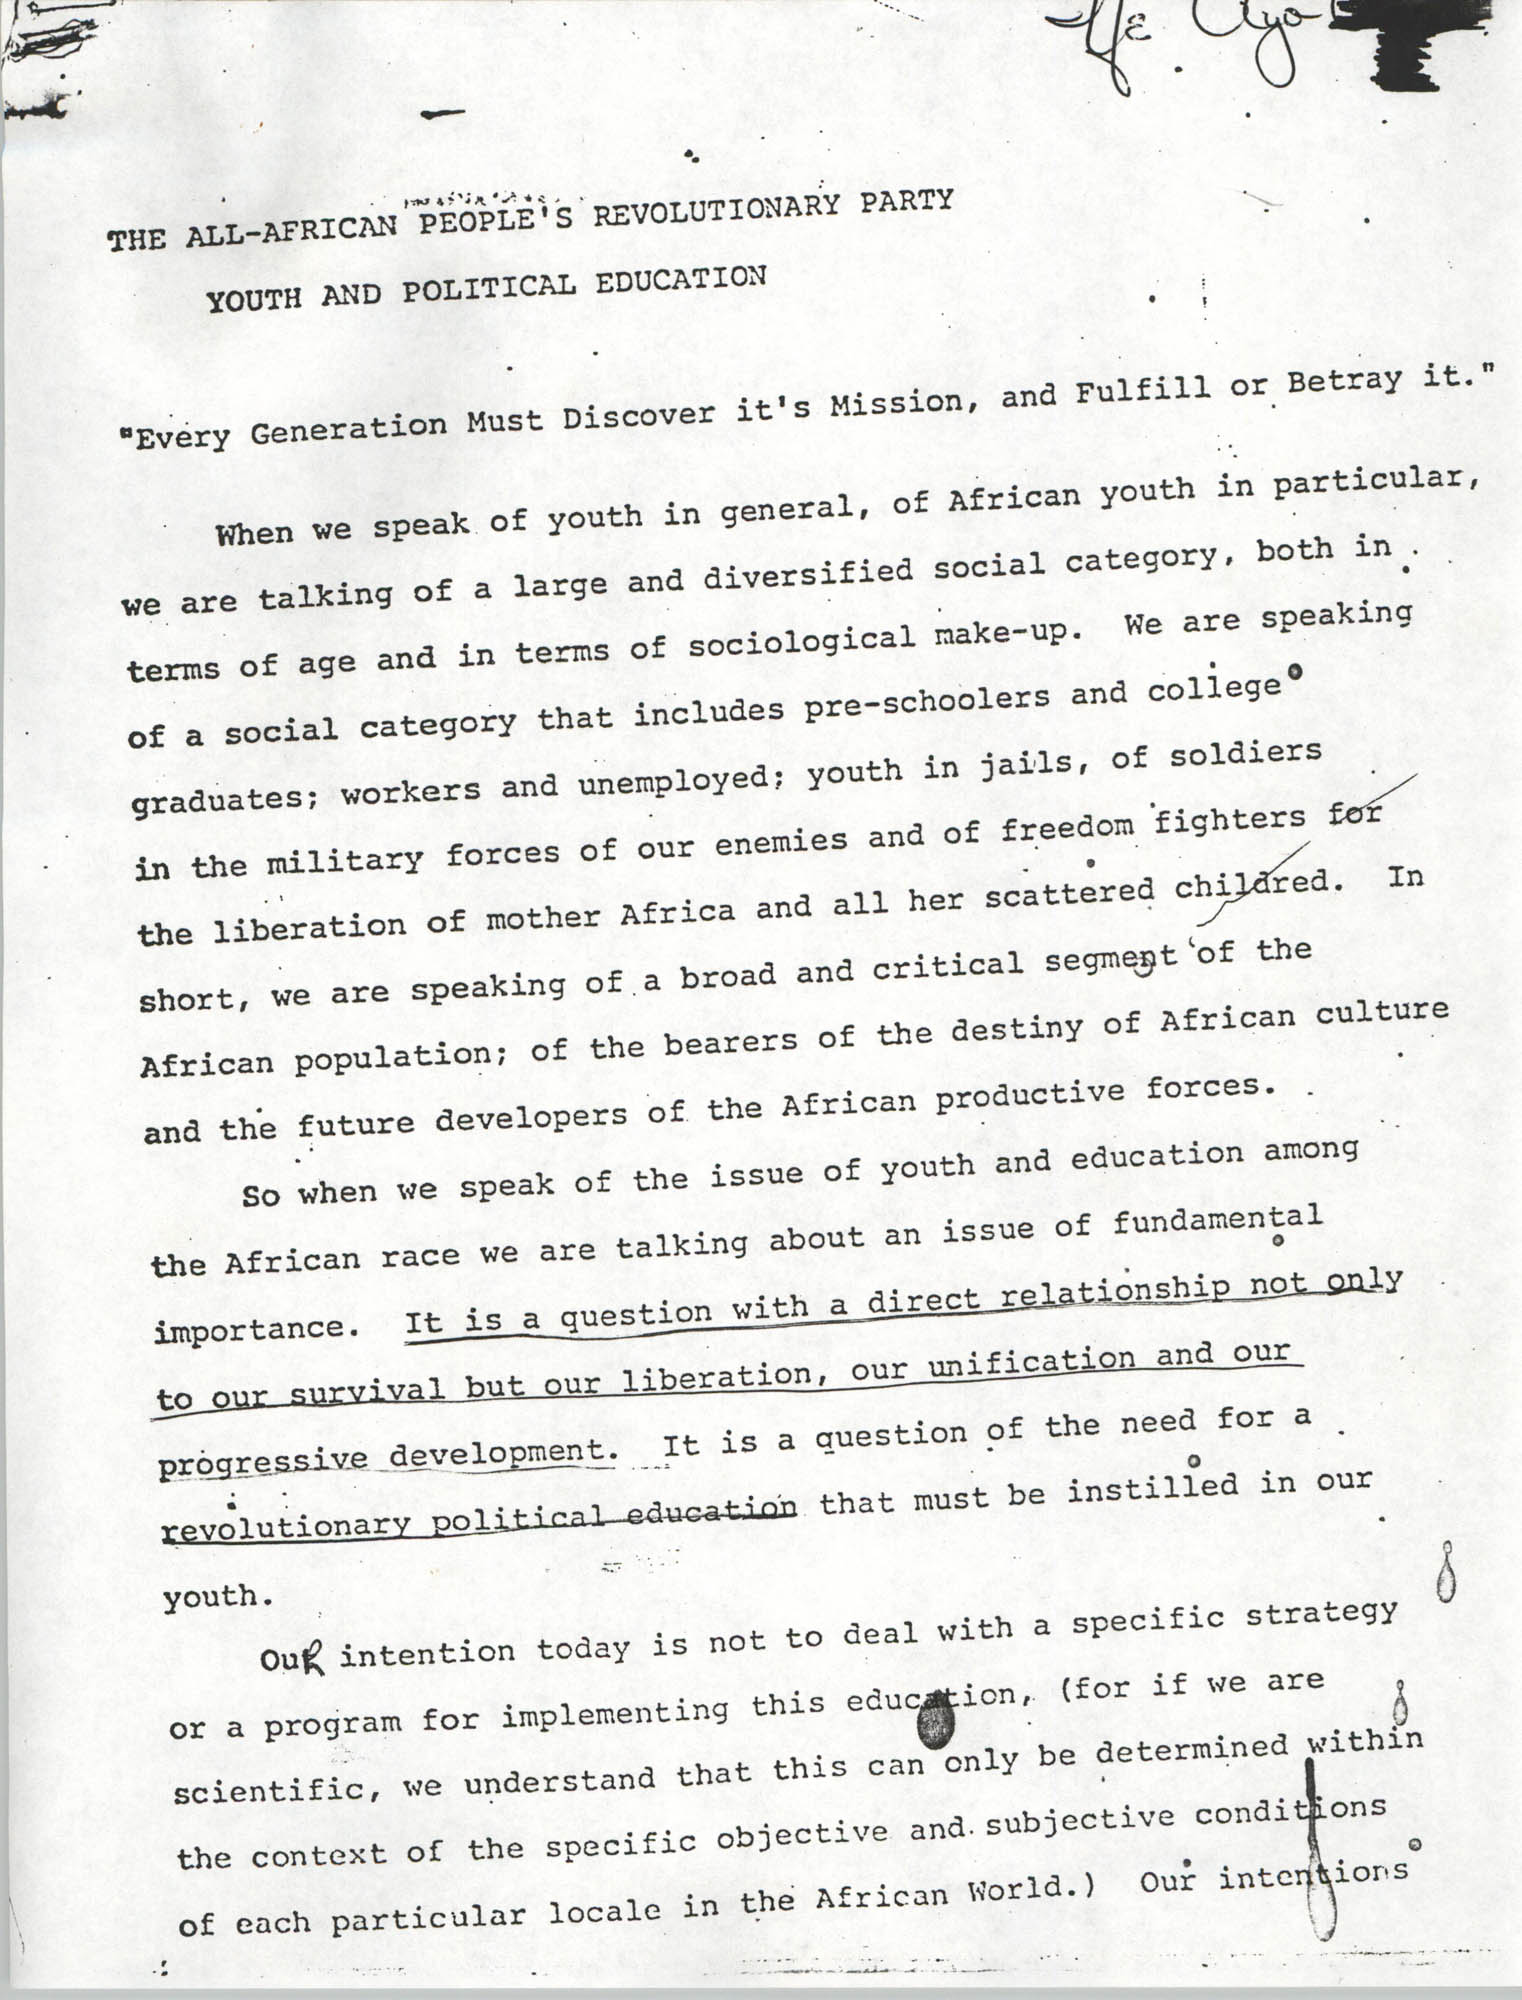 All-African People's Revolutionary Party: Youth and Political Education, Page 1